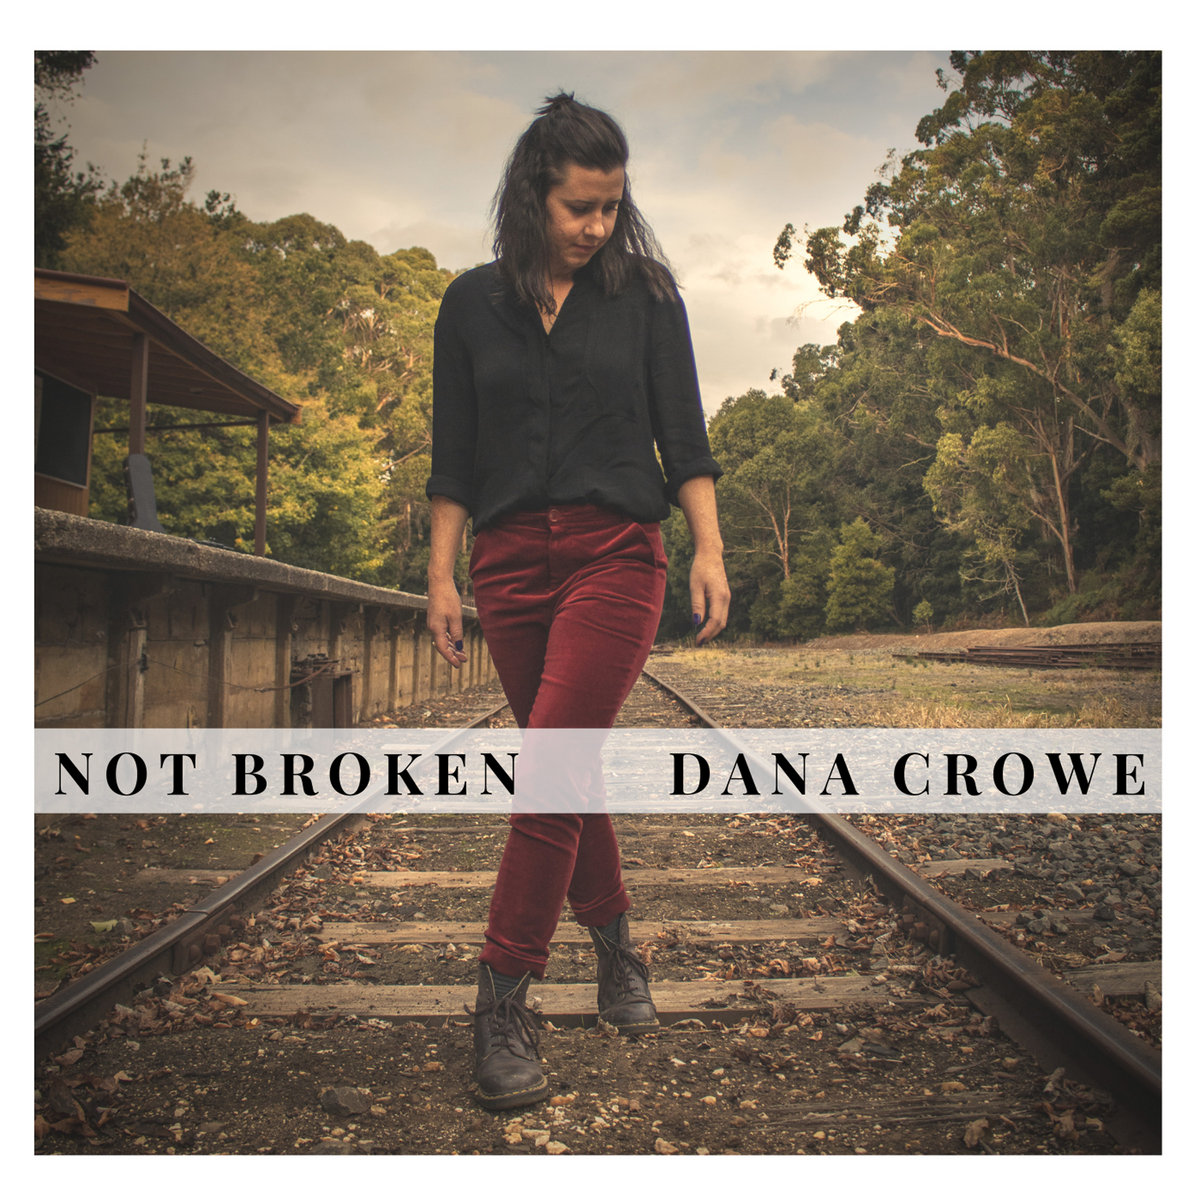 Not Broken by Dana Crowe